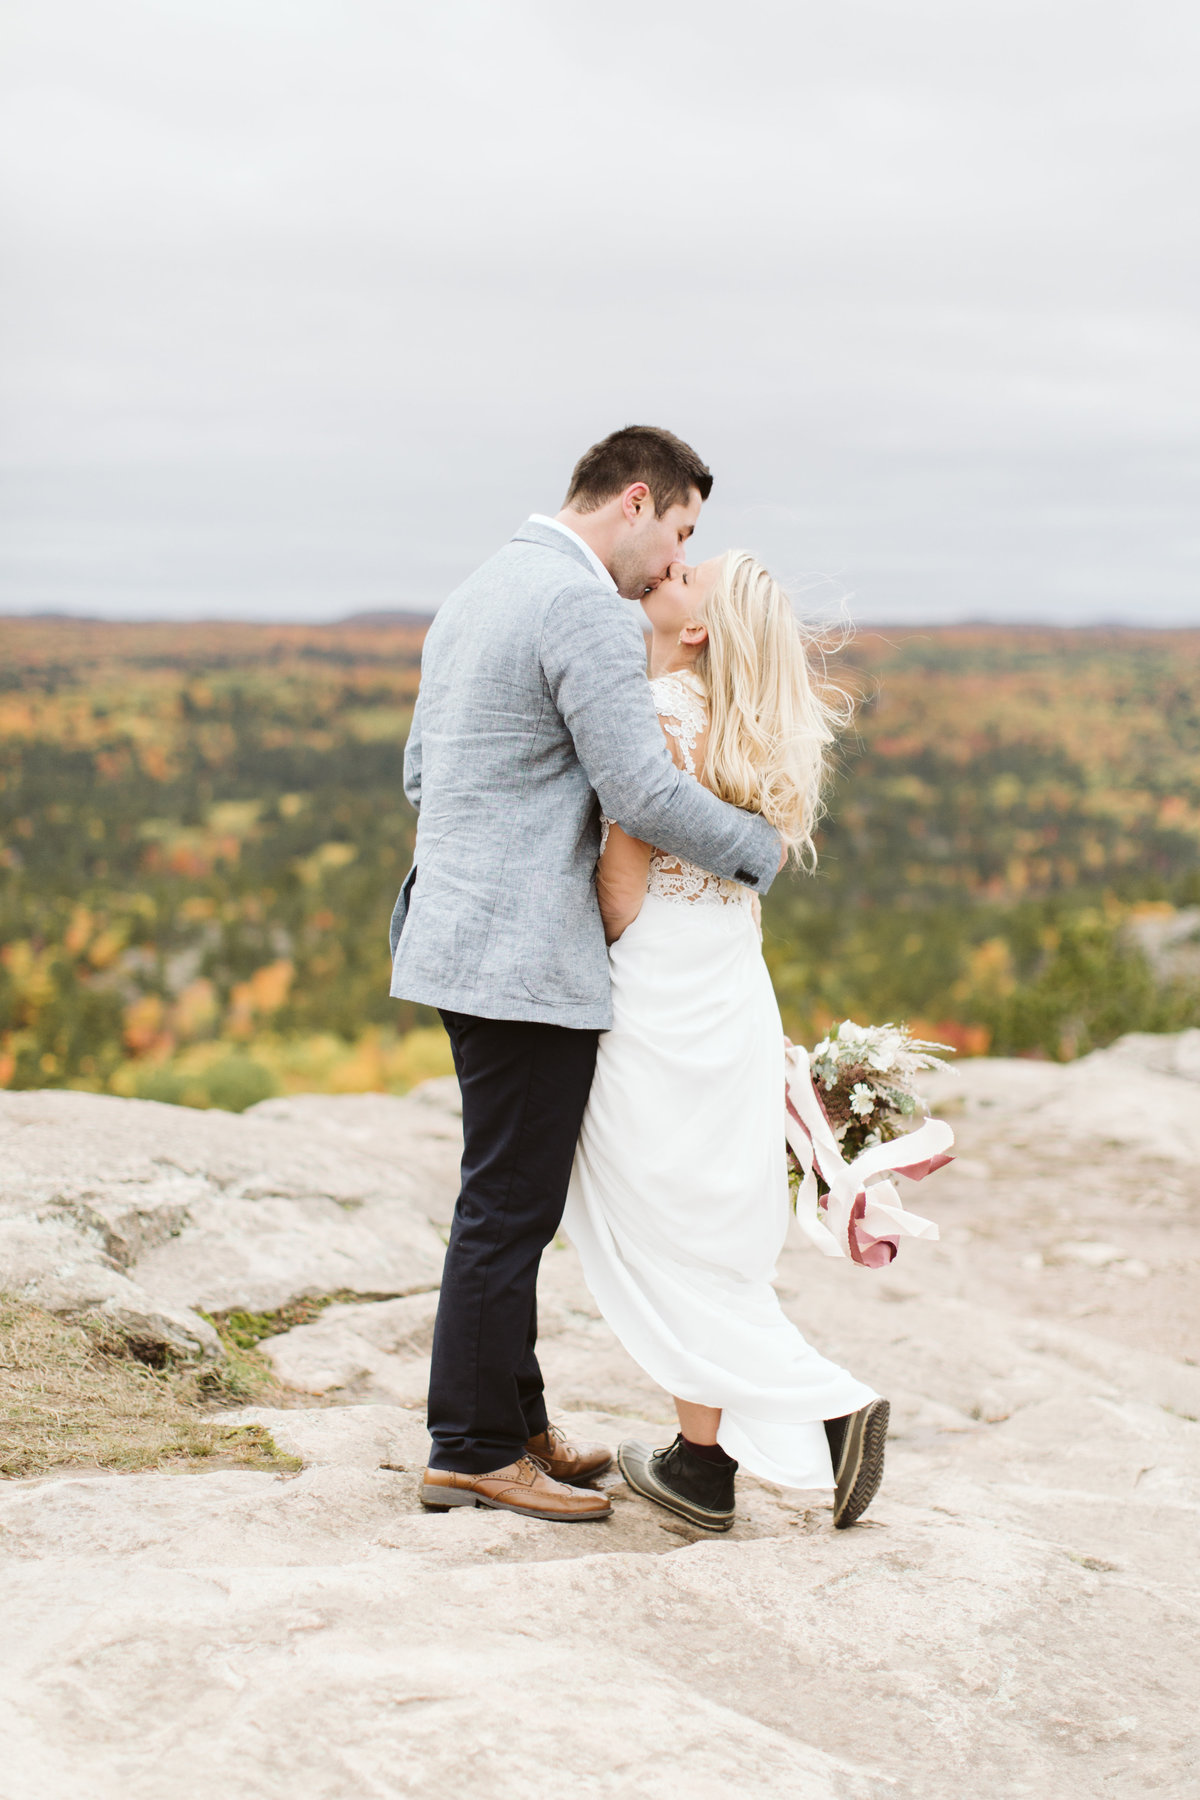 alysa_rene_photography_wisconsin_minnesota_wedding_engagement_brand_photographer_adventure_outdoor_lifestyle9